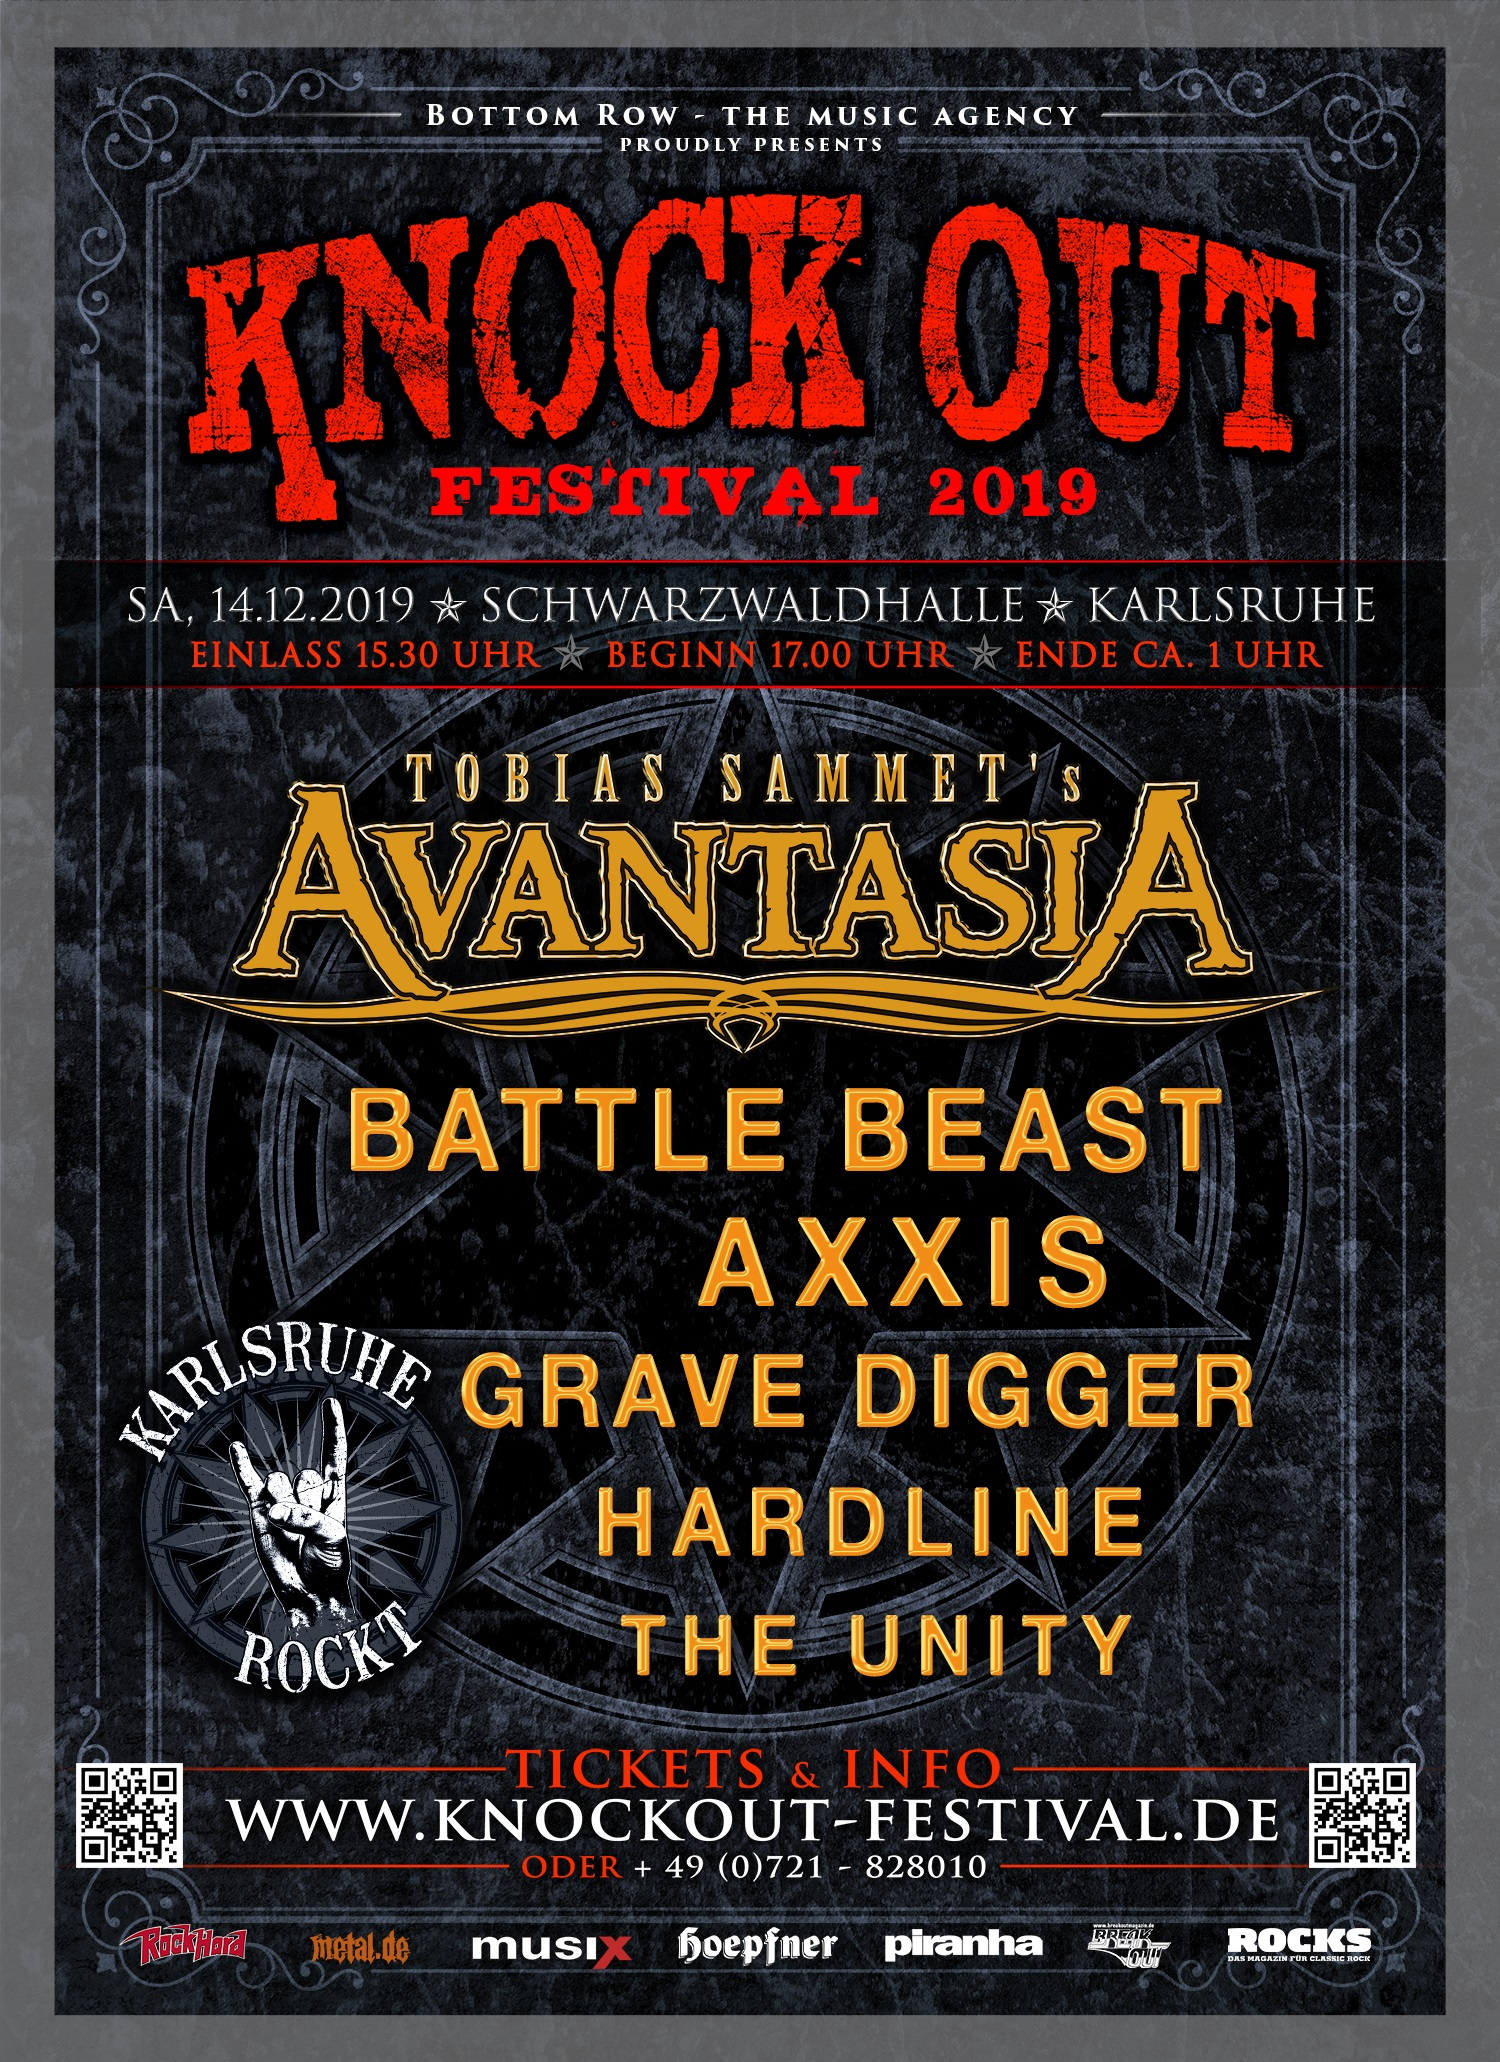 Knock Out 2019 Full Line Up